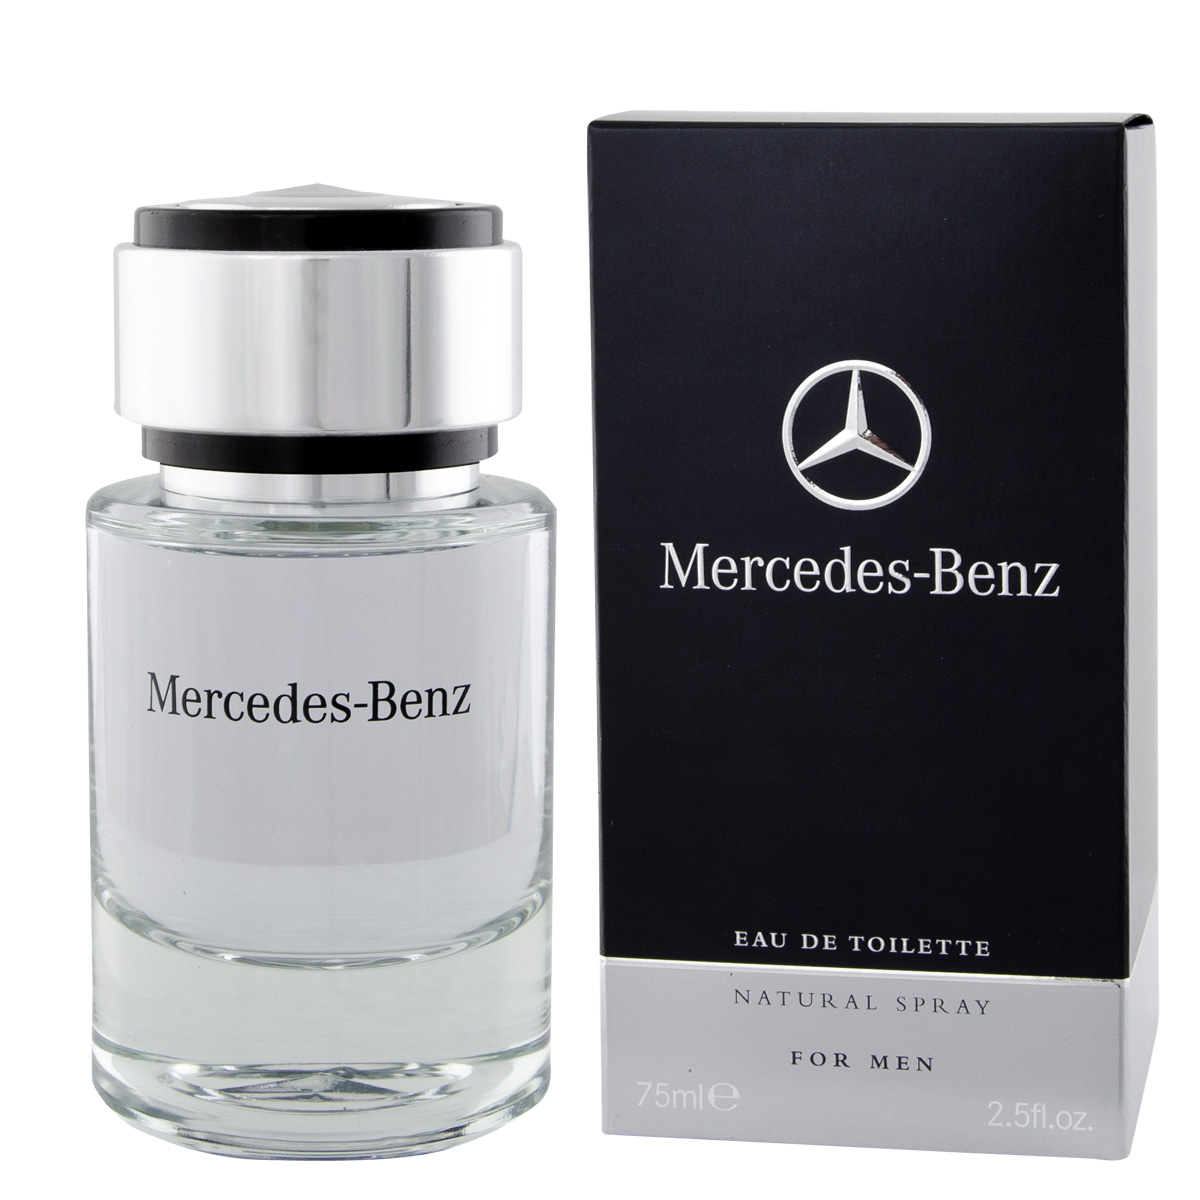 Mercedes-Benz Mercedes-Benz Eau De Toilette 75 ml (man) 71585